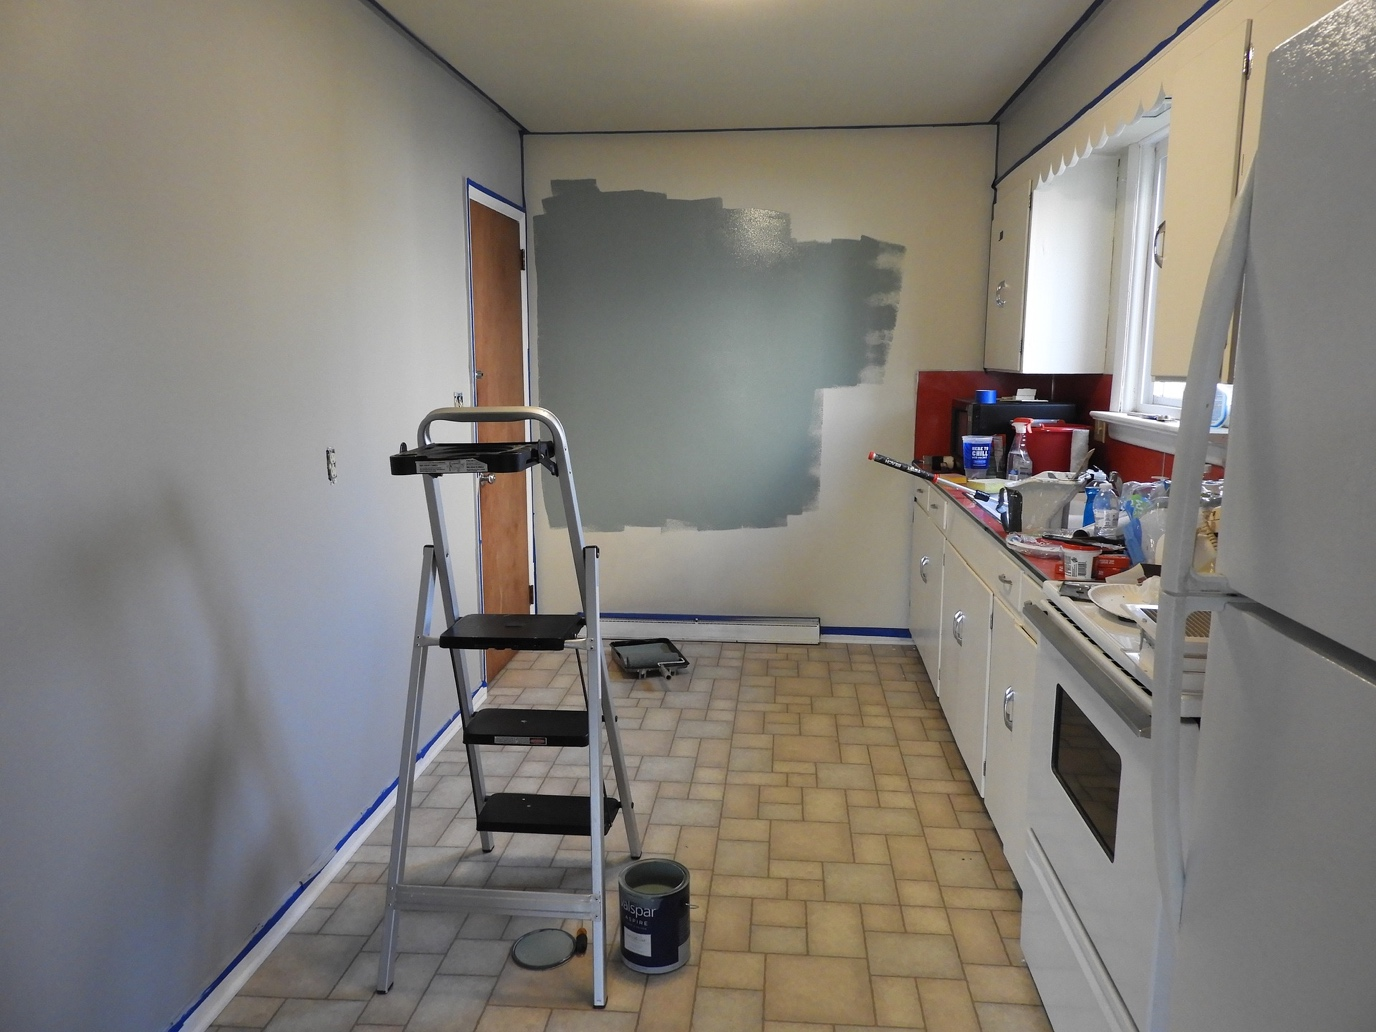 A back kitchen being repainted